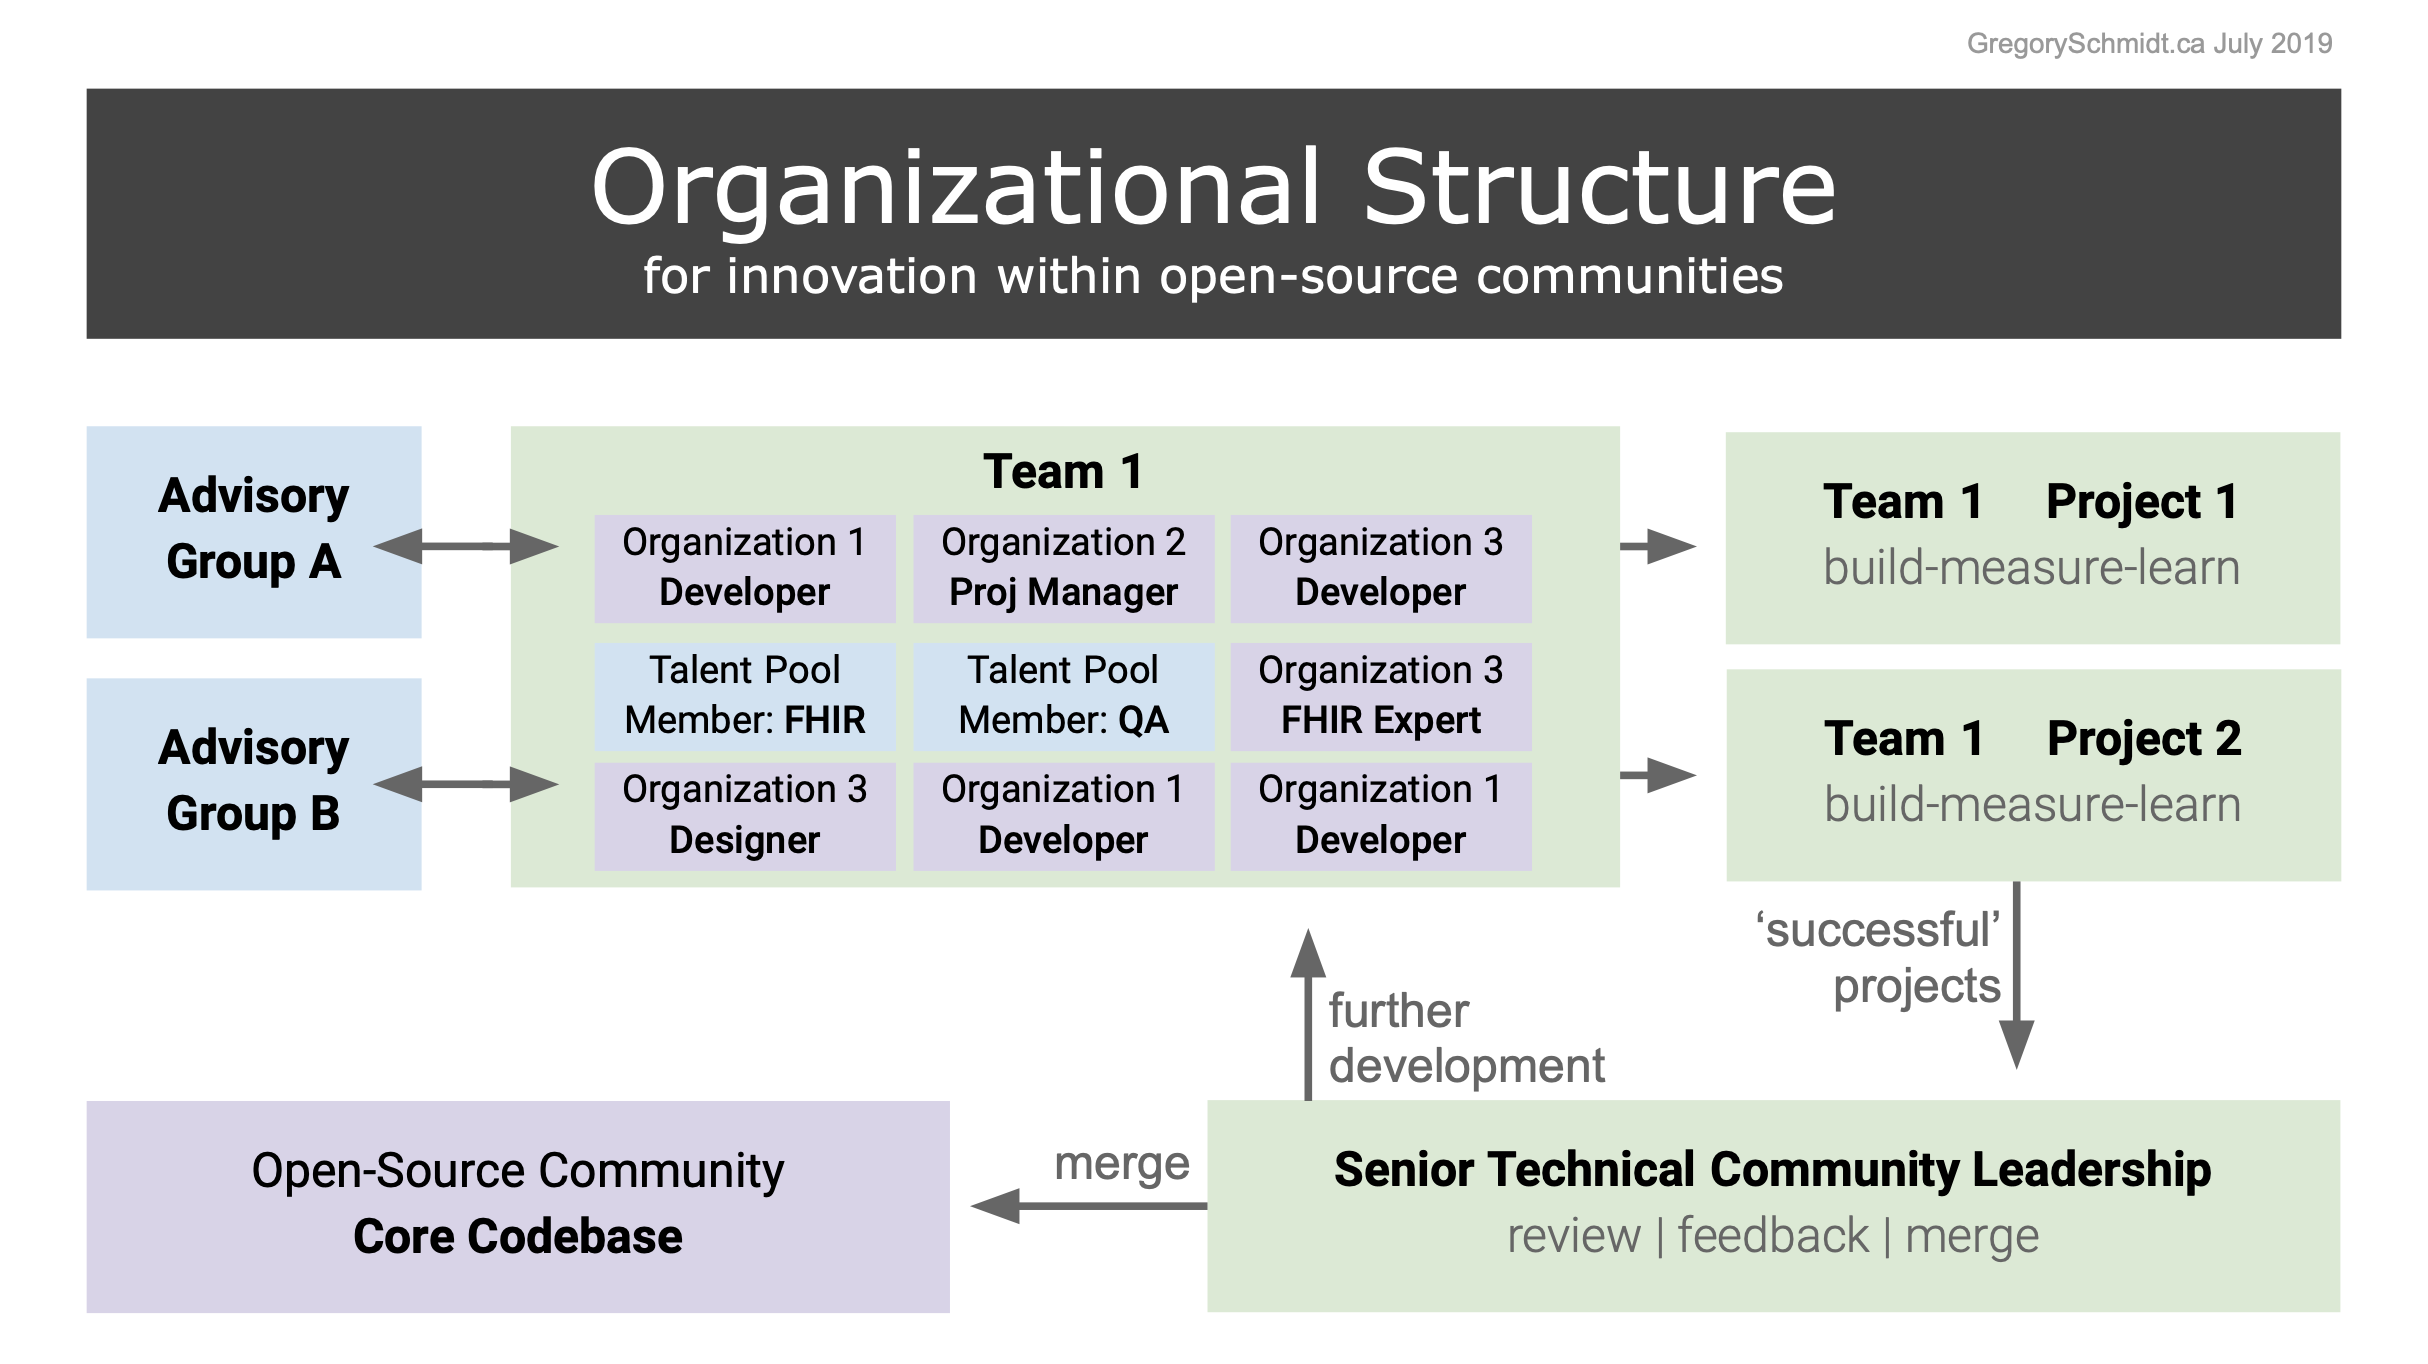 org structure innovation open-source community